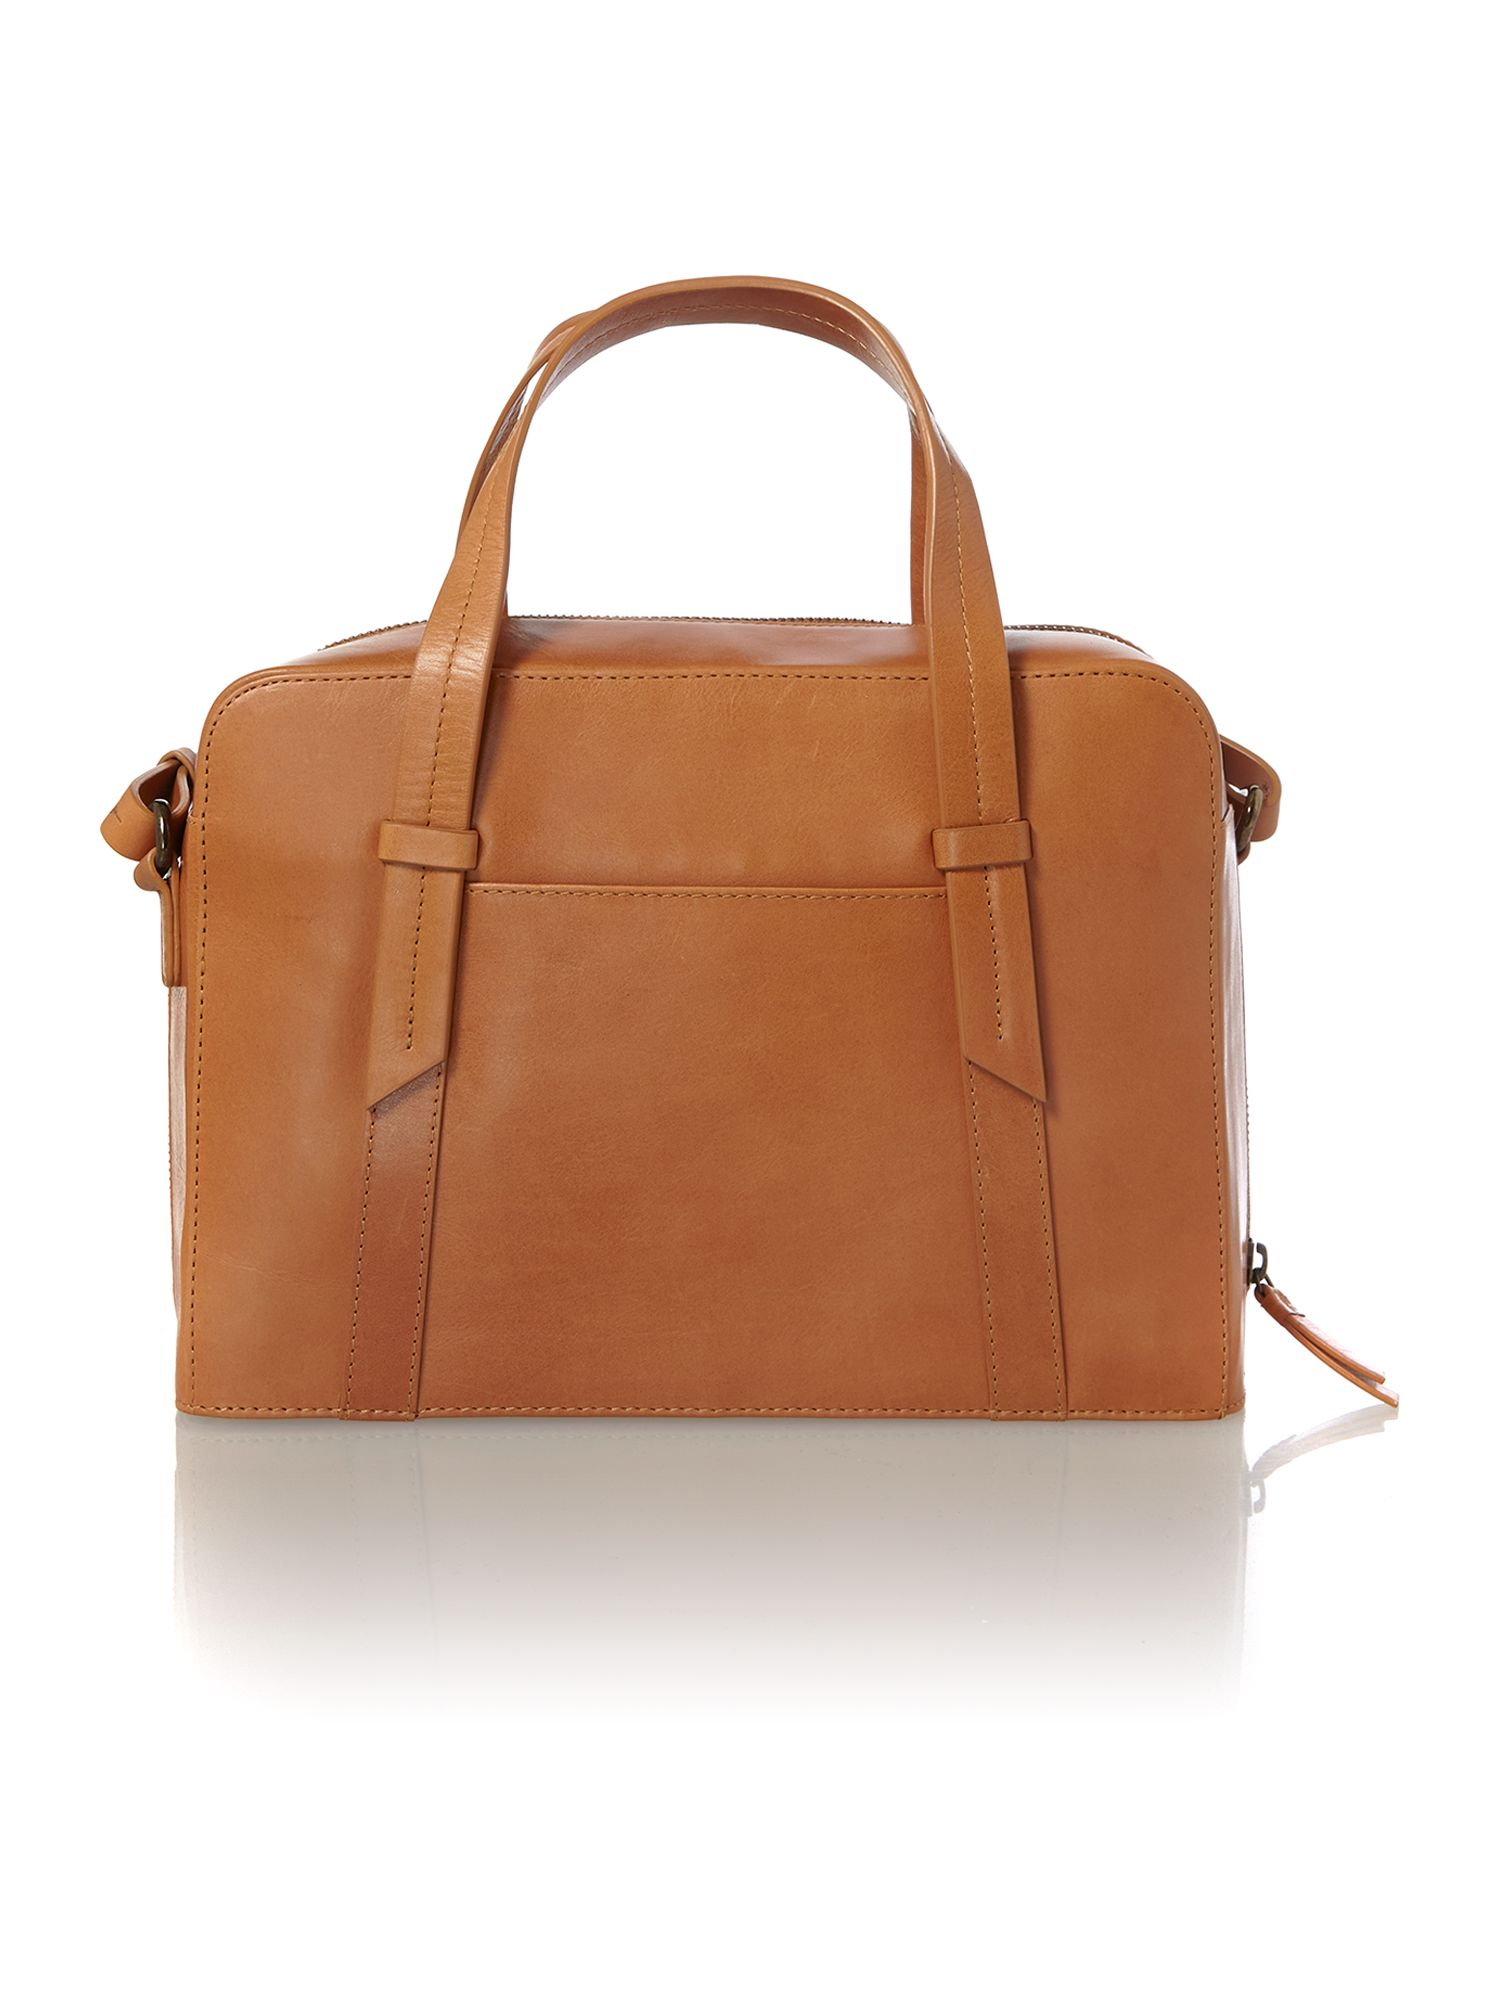 Malton tan medium cross body tote bag